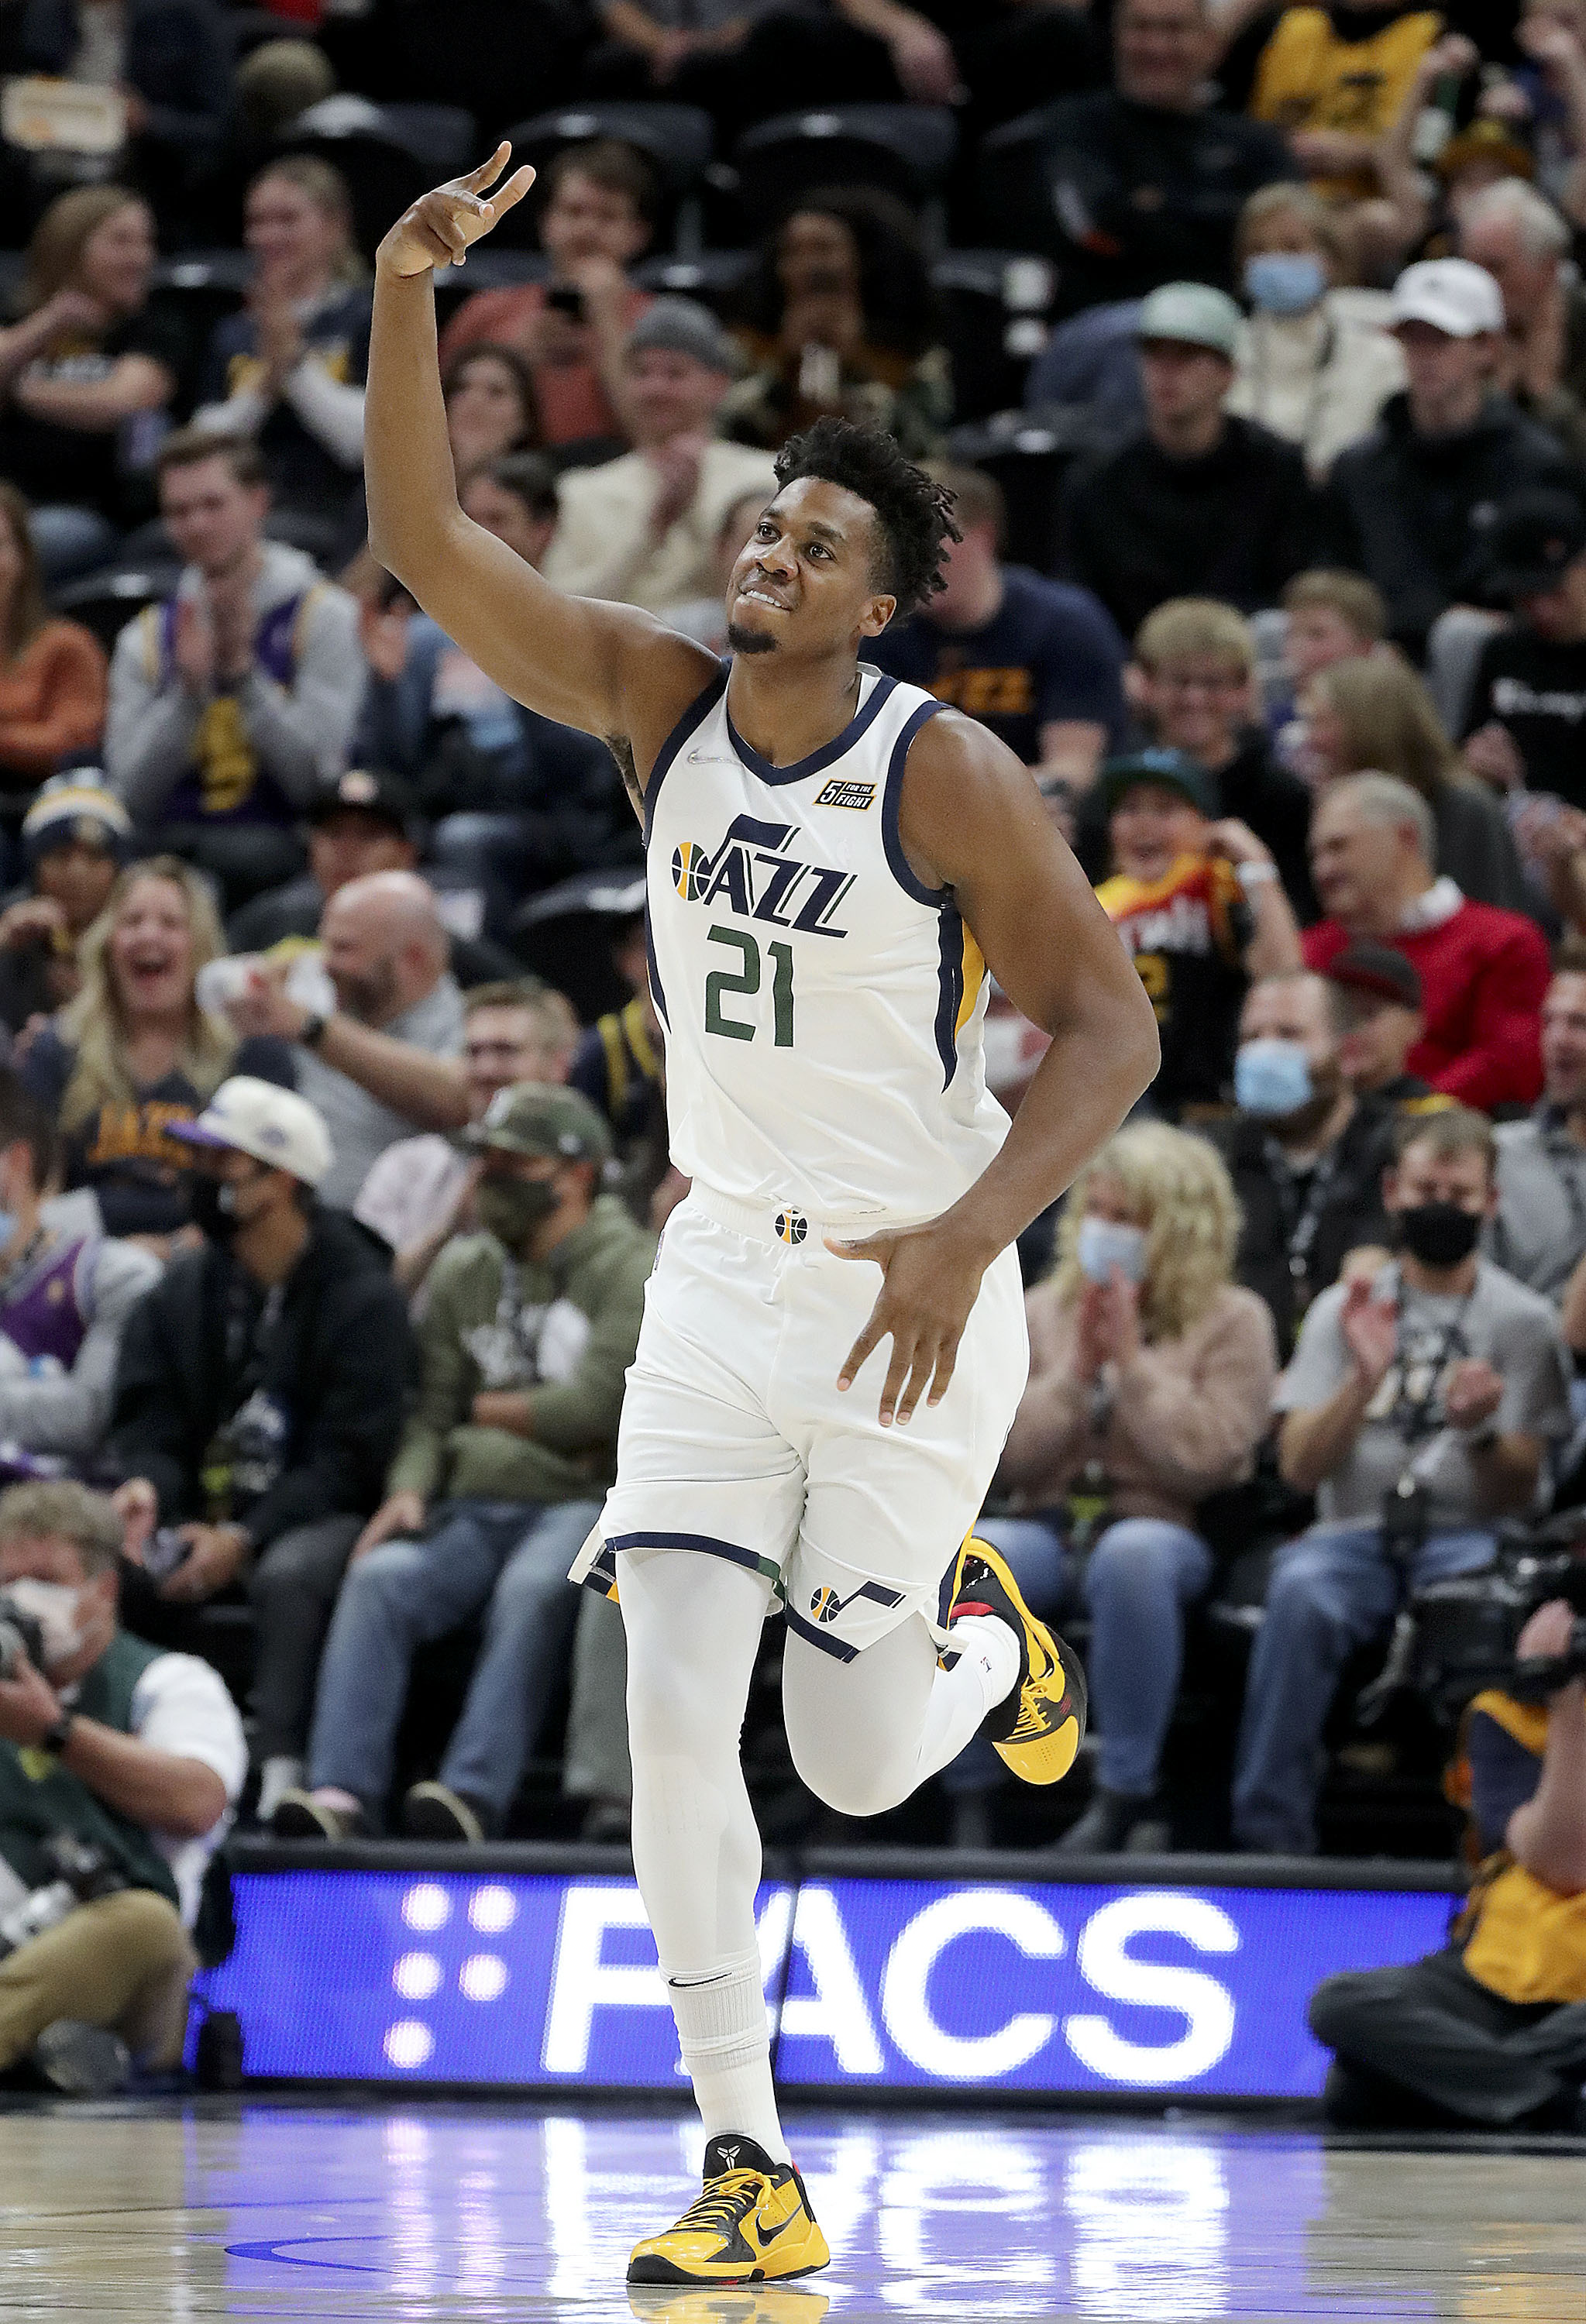 Utah Jazz center Hassan Whiteside reacts to a play during a preseason game vs. the New Orleans Pelicans at the Vivint Arena.